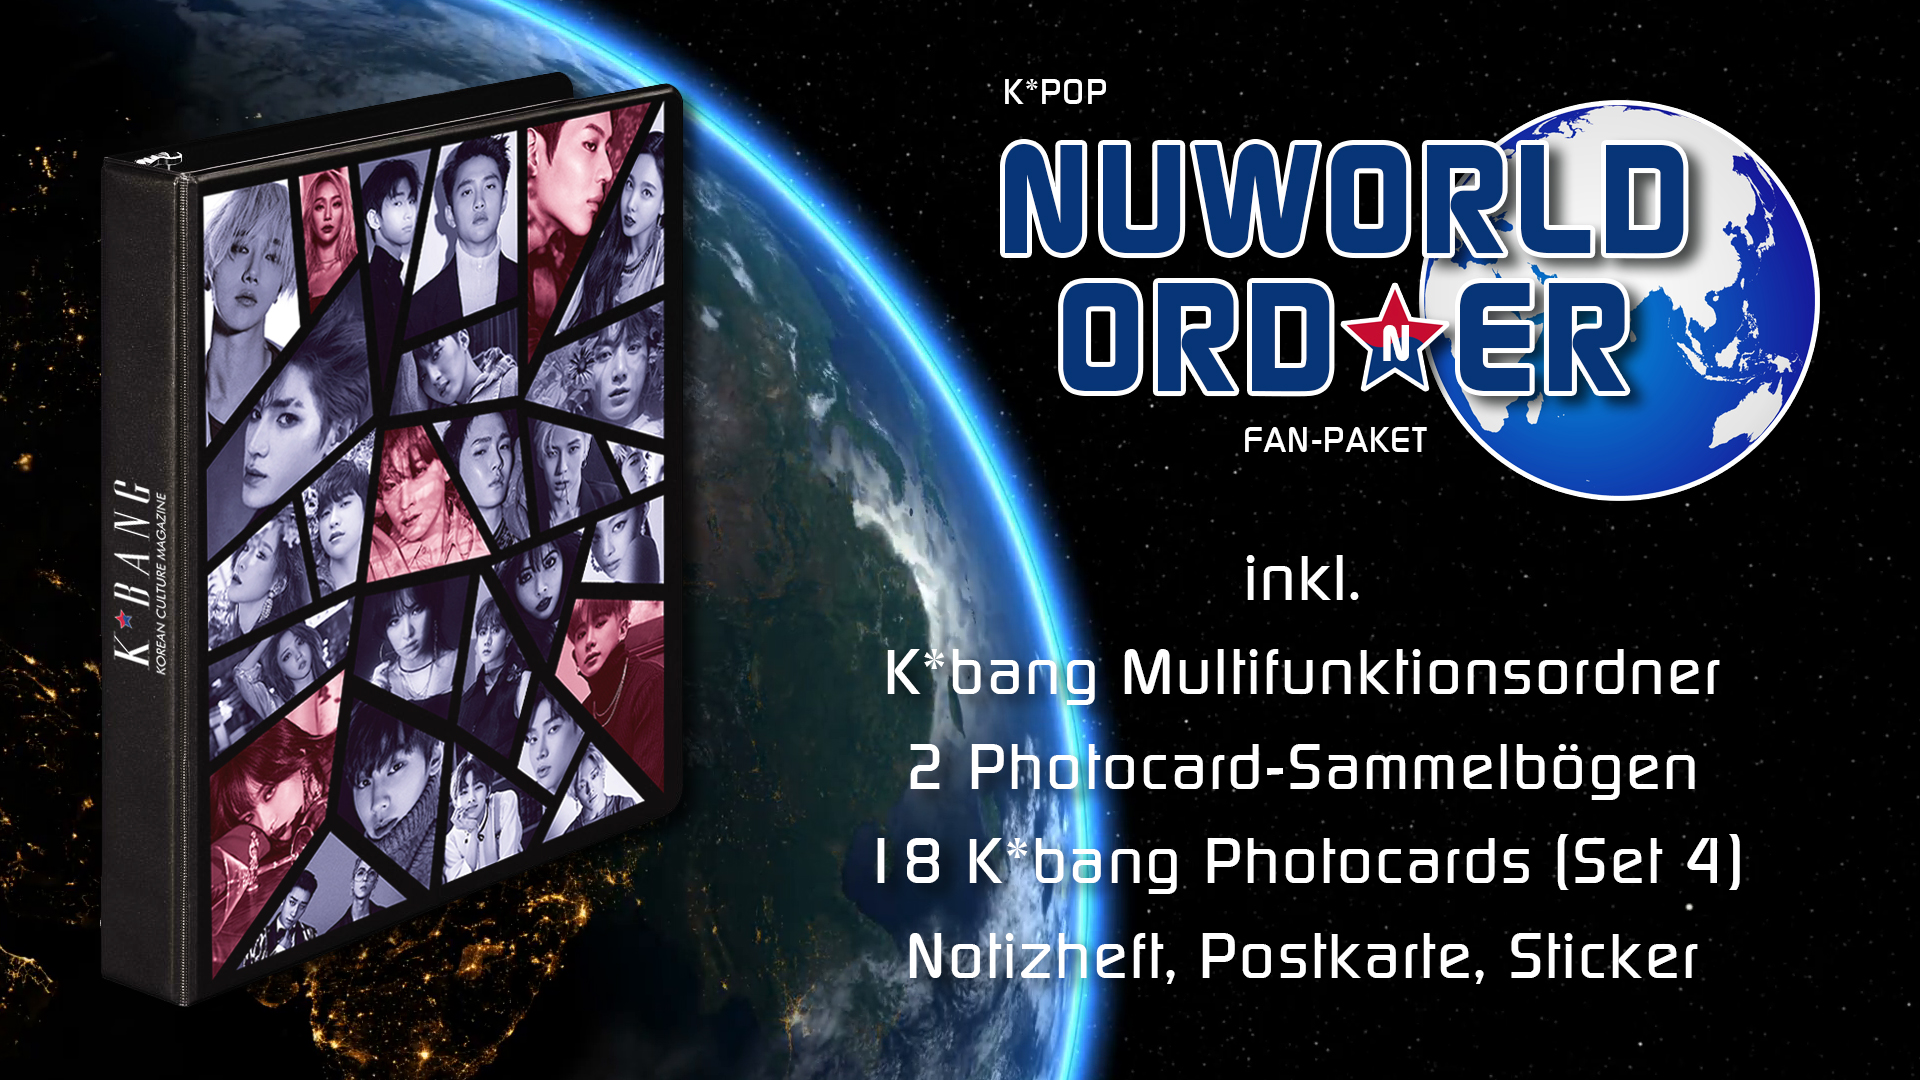 K-Pop Nuworld Ord(n)er